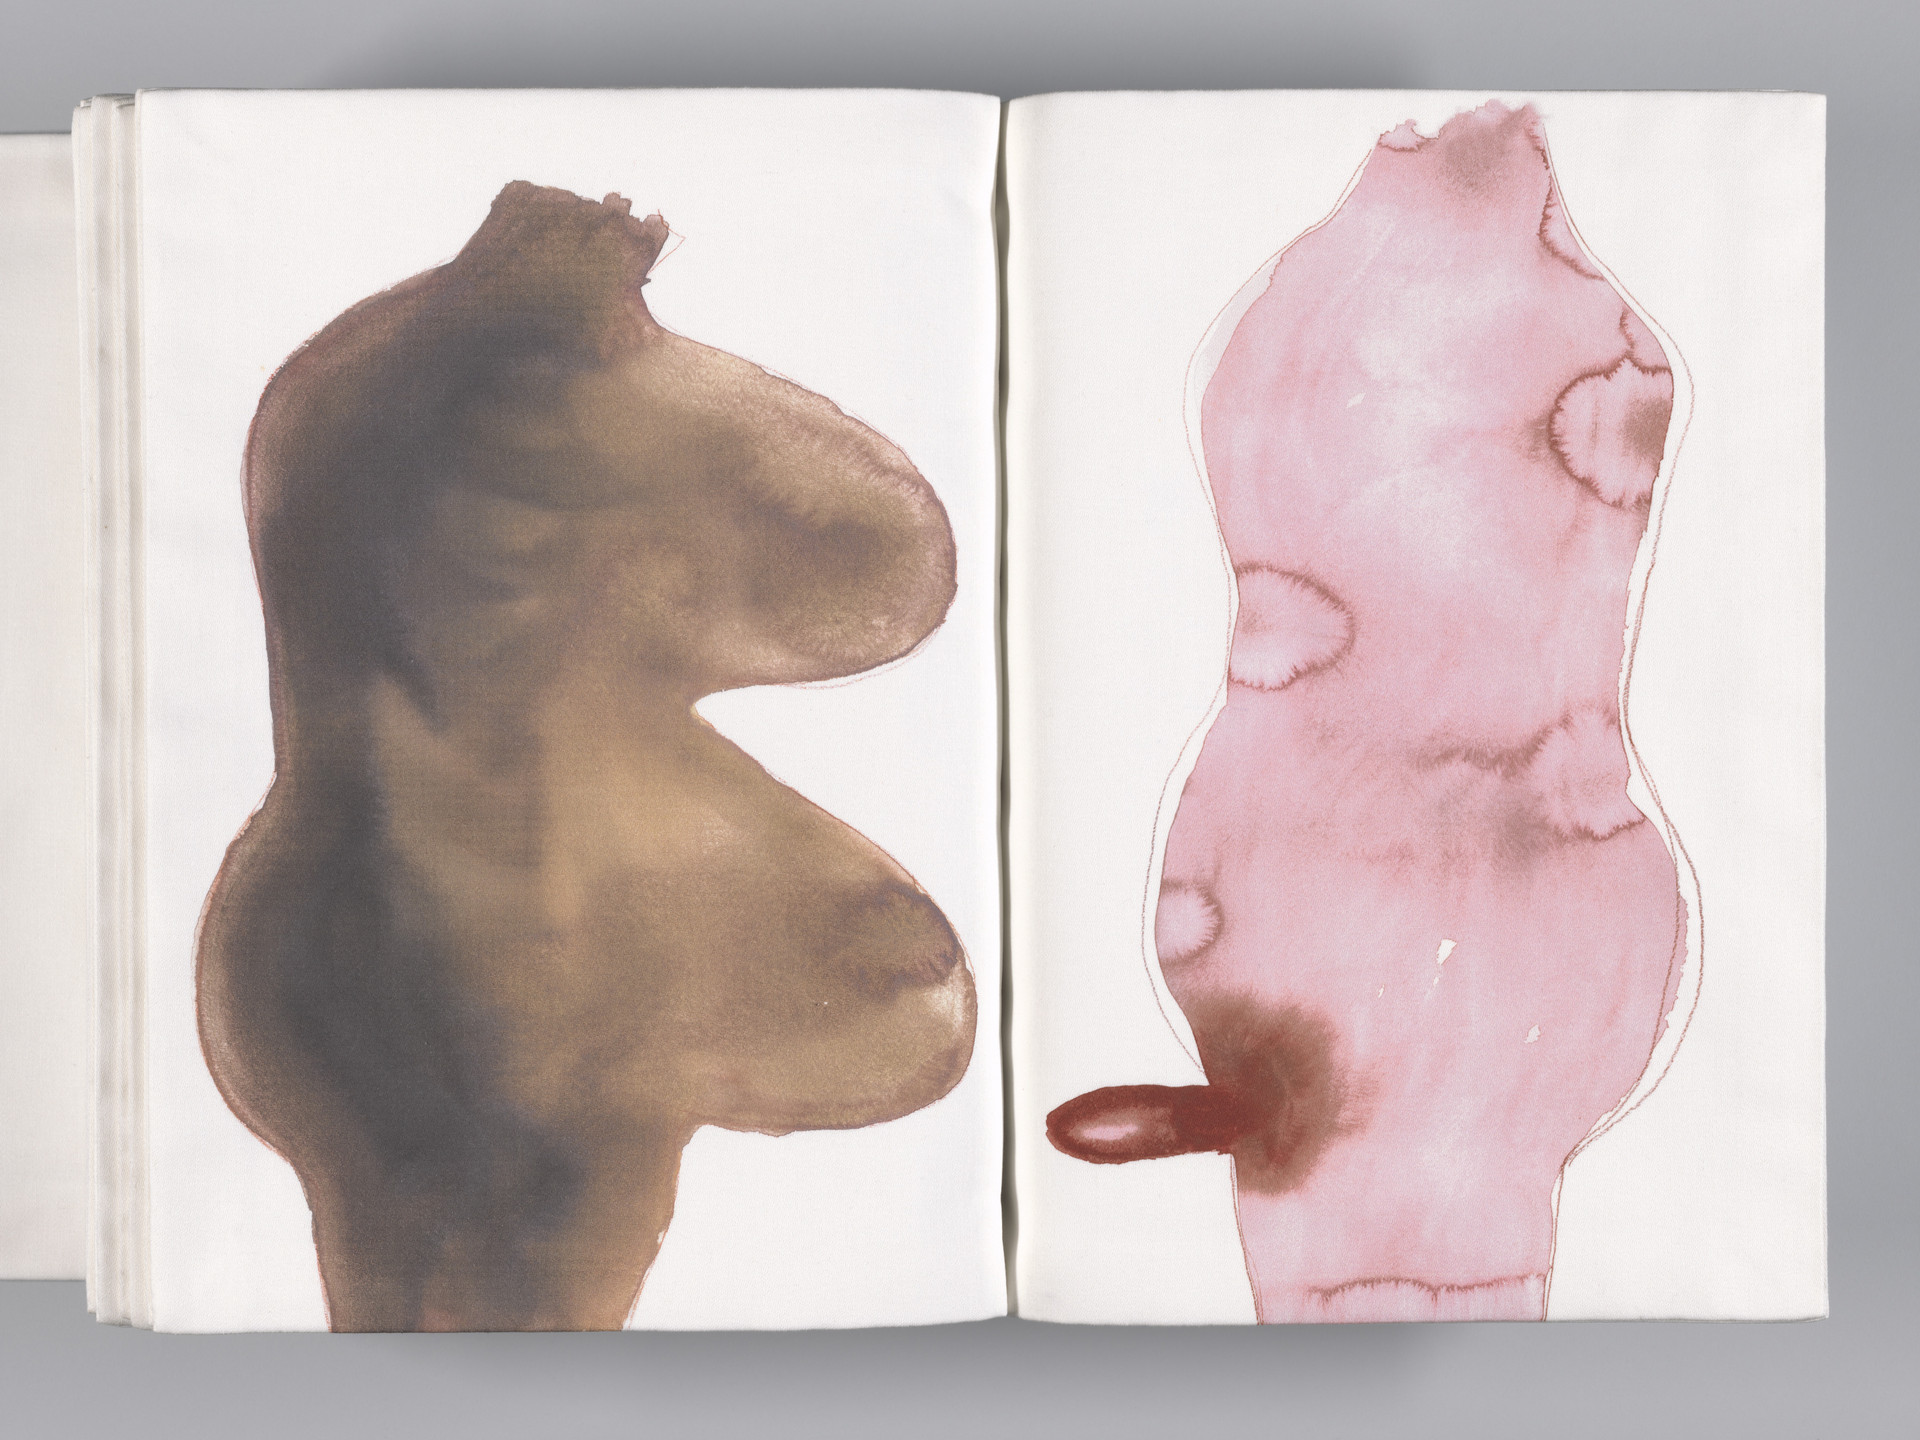 Louise Bourgeois. Untitled, no. 12 of 12, from the illustrated book, To Whom It May Concern. 2010